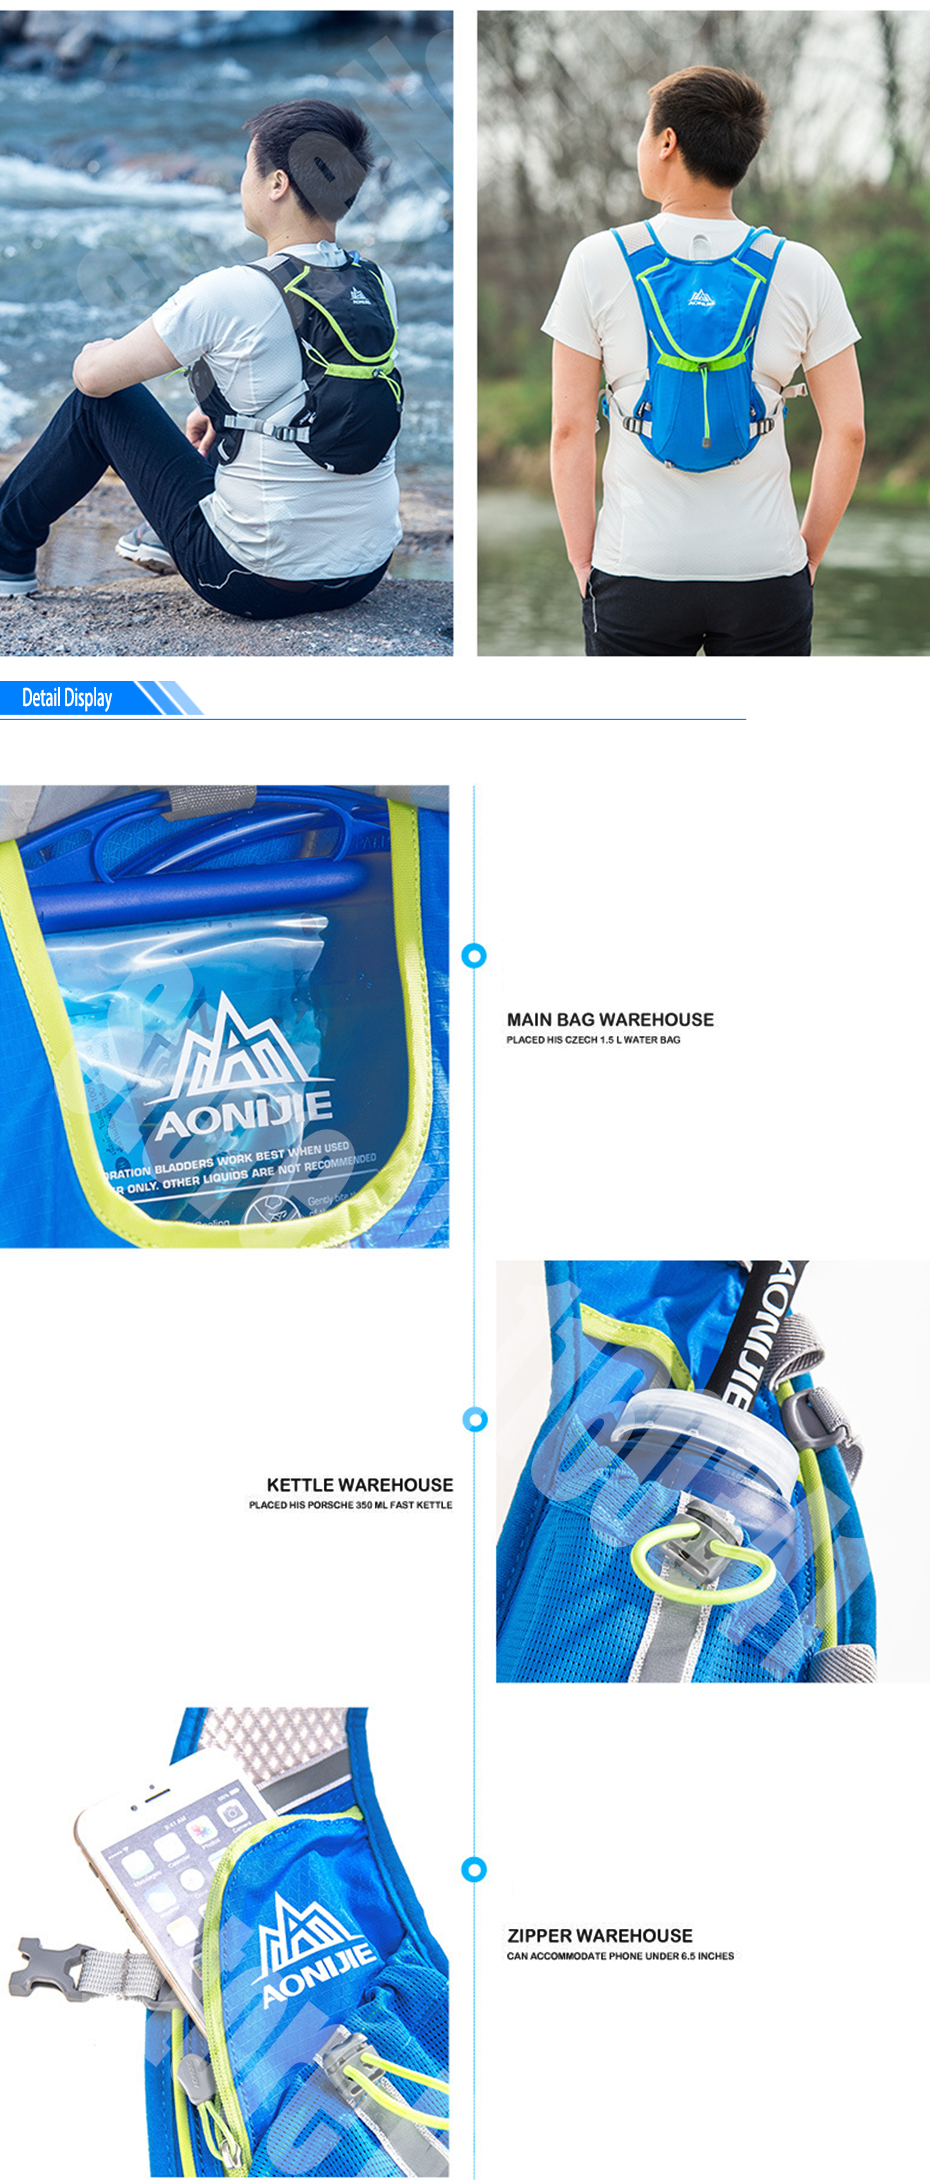 2018 Aonijie Outdoor Trail Running Marathon Hydration Backpack C930 15l Blue Aeproduct